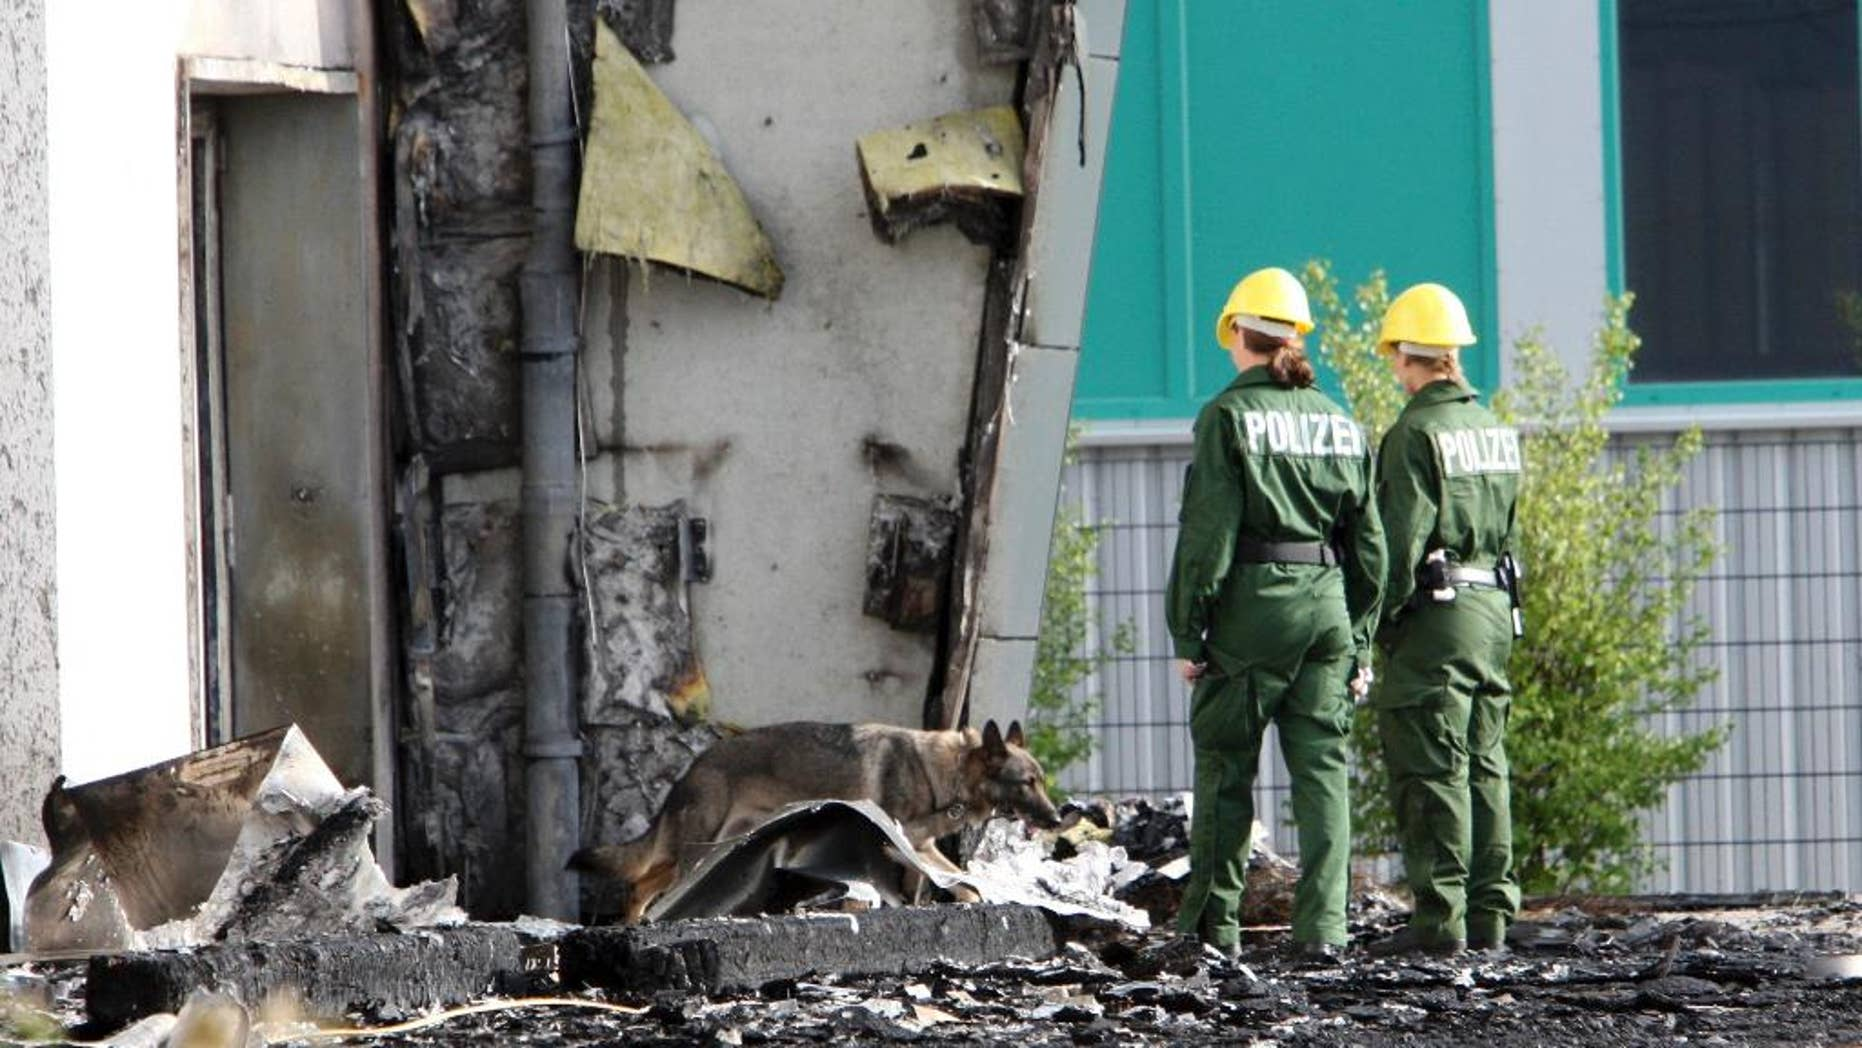 FILE - In this Aug. 26, 2015 file picture police officers and their sniffer dog examine the ruins of a burned out gym in Nauen, Germany. A German court has convicted a far-right politician for burning down the  building intended as housing for refugees. The Potsdam court sentenced 29-year-old Maik Schneider, a member of the National Democratic Party, to eight years imprisonment for arson Thursday. Feb. 9, 2017.   ( Nestor Bachmann/dpa via AP,file)